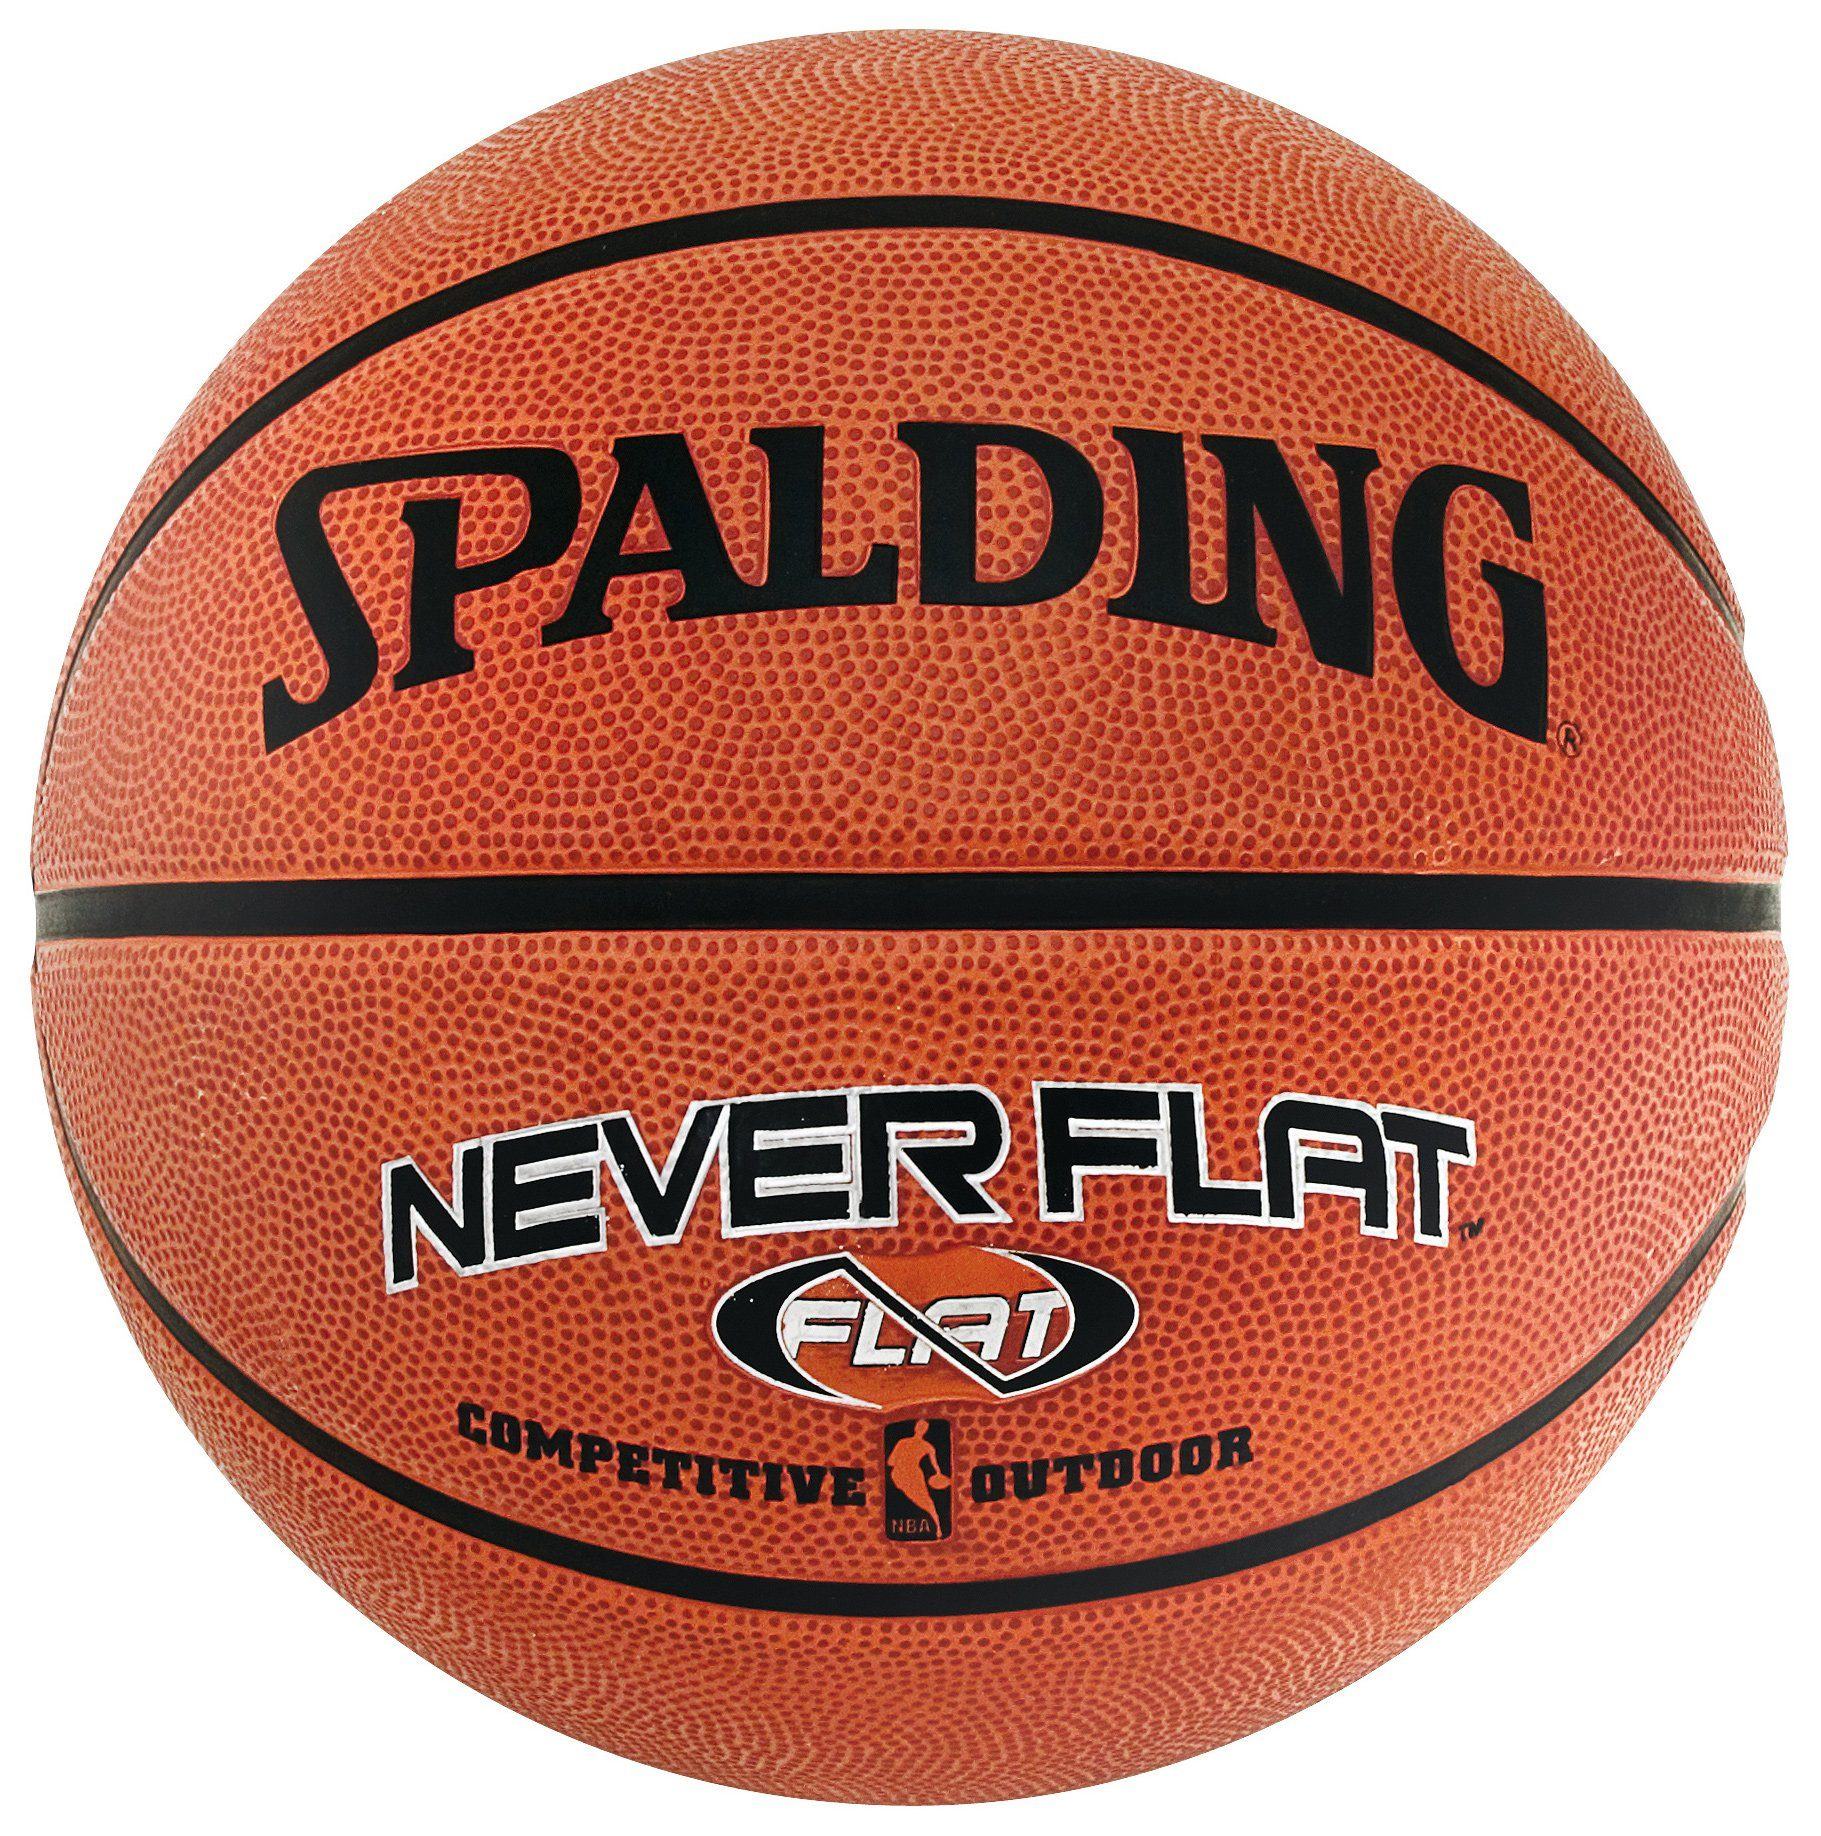 Spalding NBA Neverflat Outdoor (63-803Z) Basketball